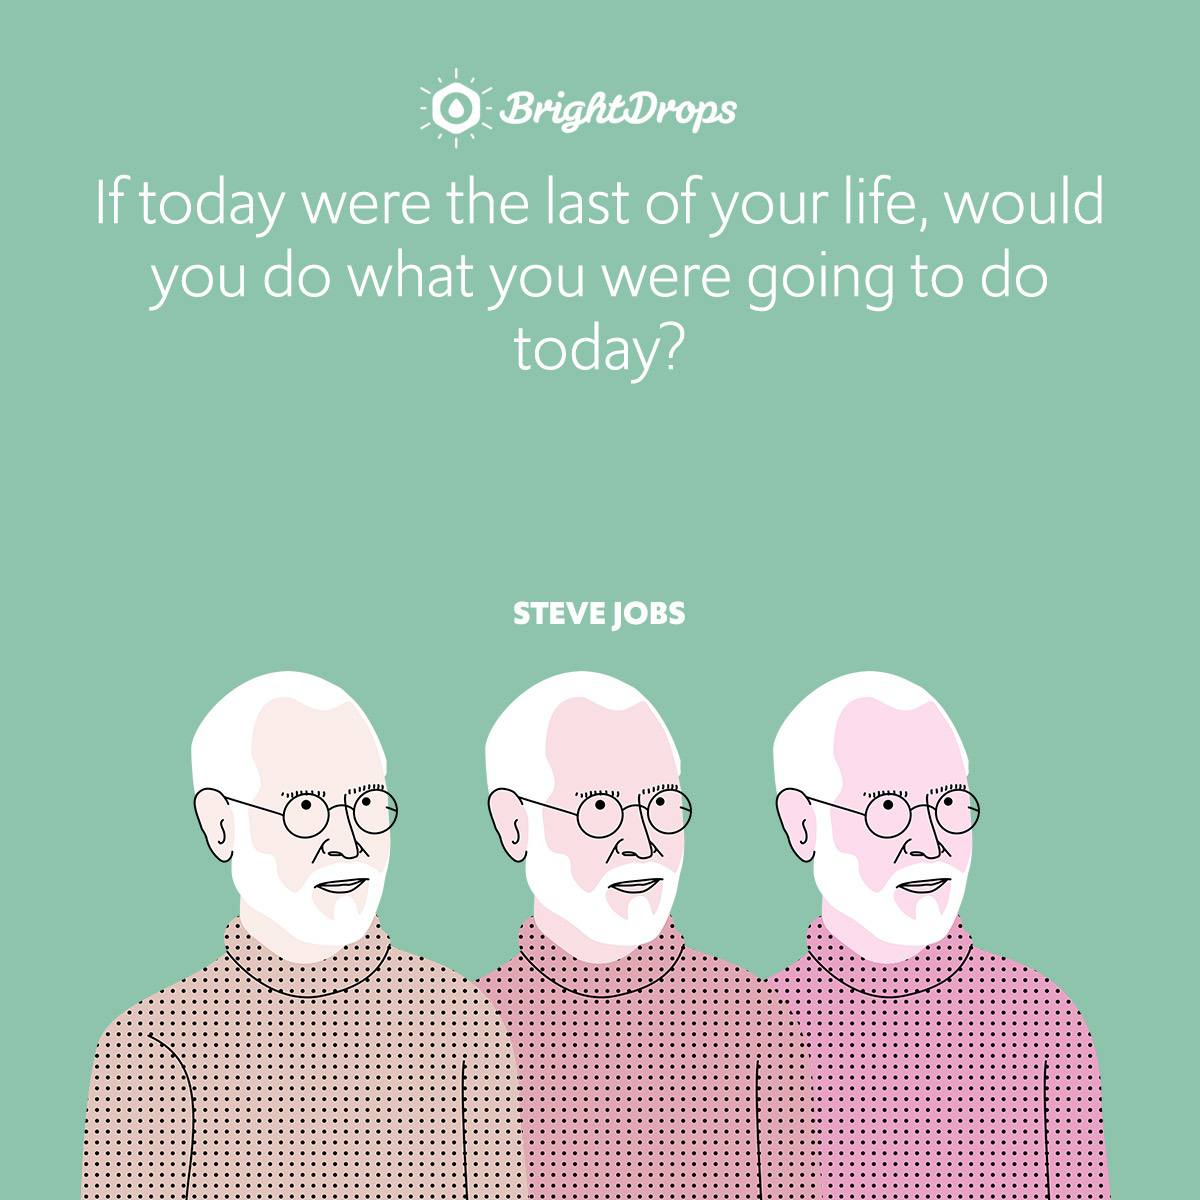 If today were the last of your life, would you do what you were going to do today?